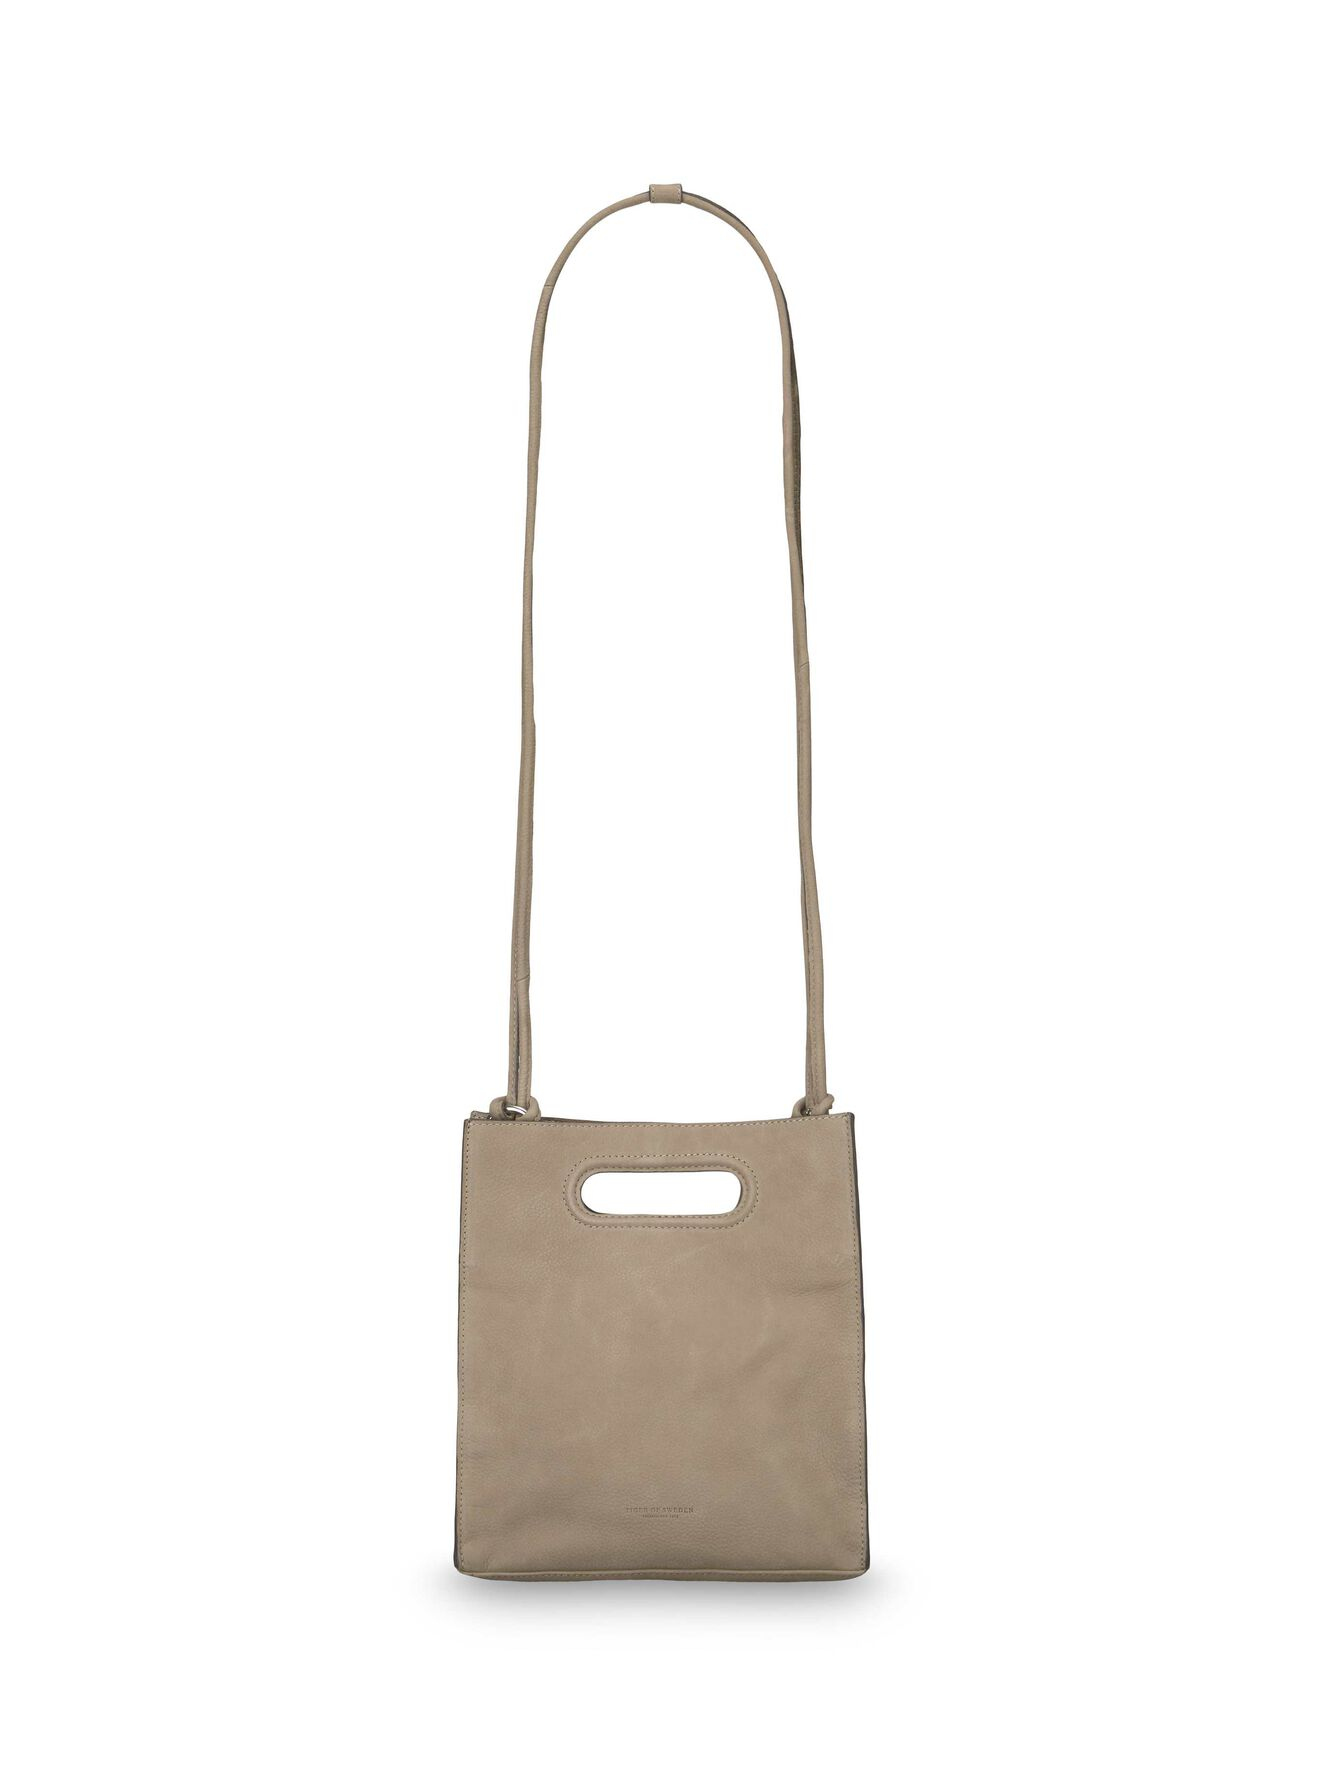 Hillcourtn Bag in Light Taupe from Tiger of Sweden